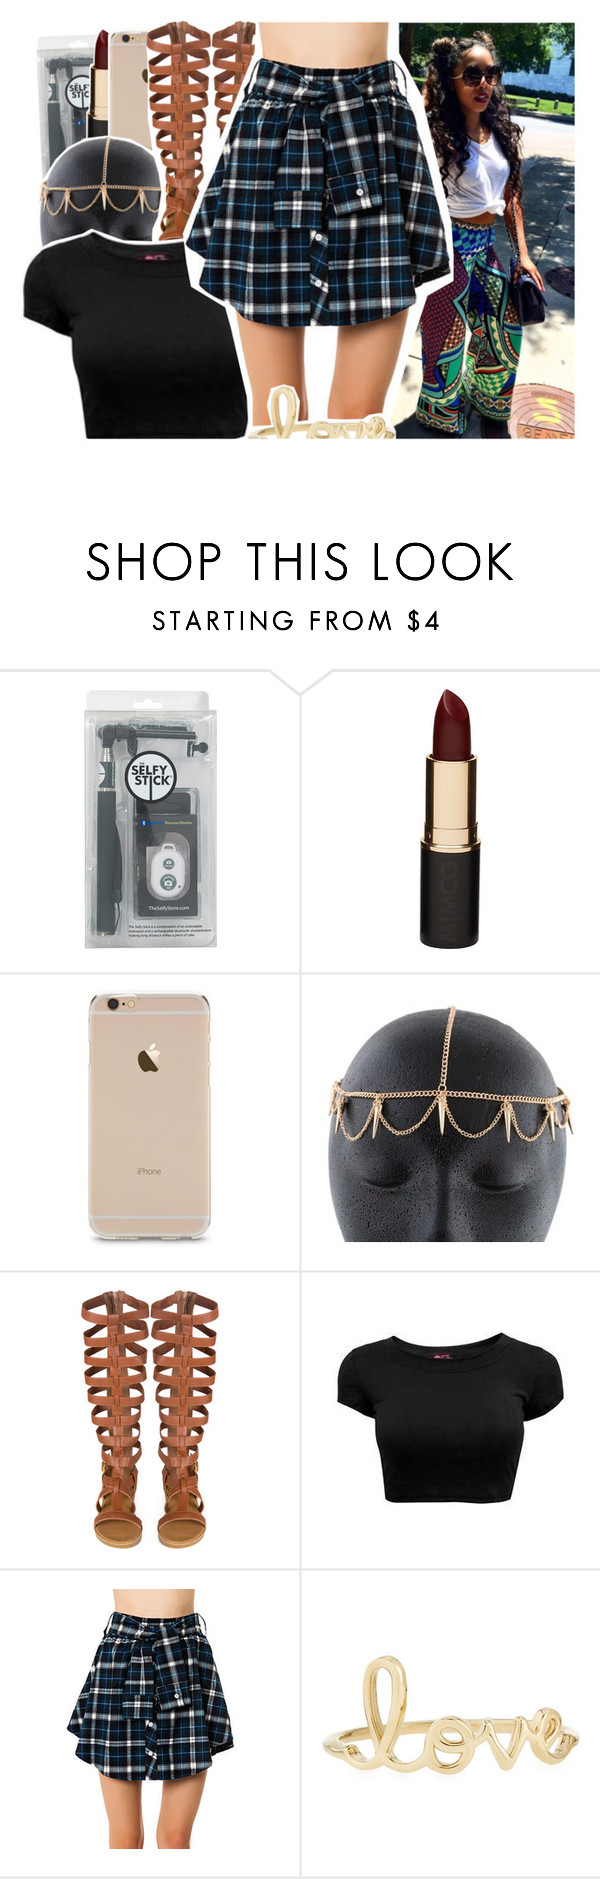 """Polyvore updated"" by lulu-foreva ❤ liked on Polyvore featuring Topshop, Mimco and Sydney Evan"